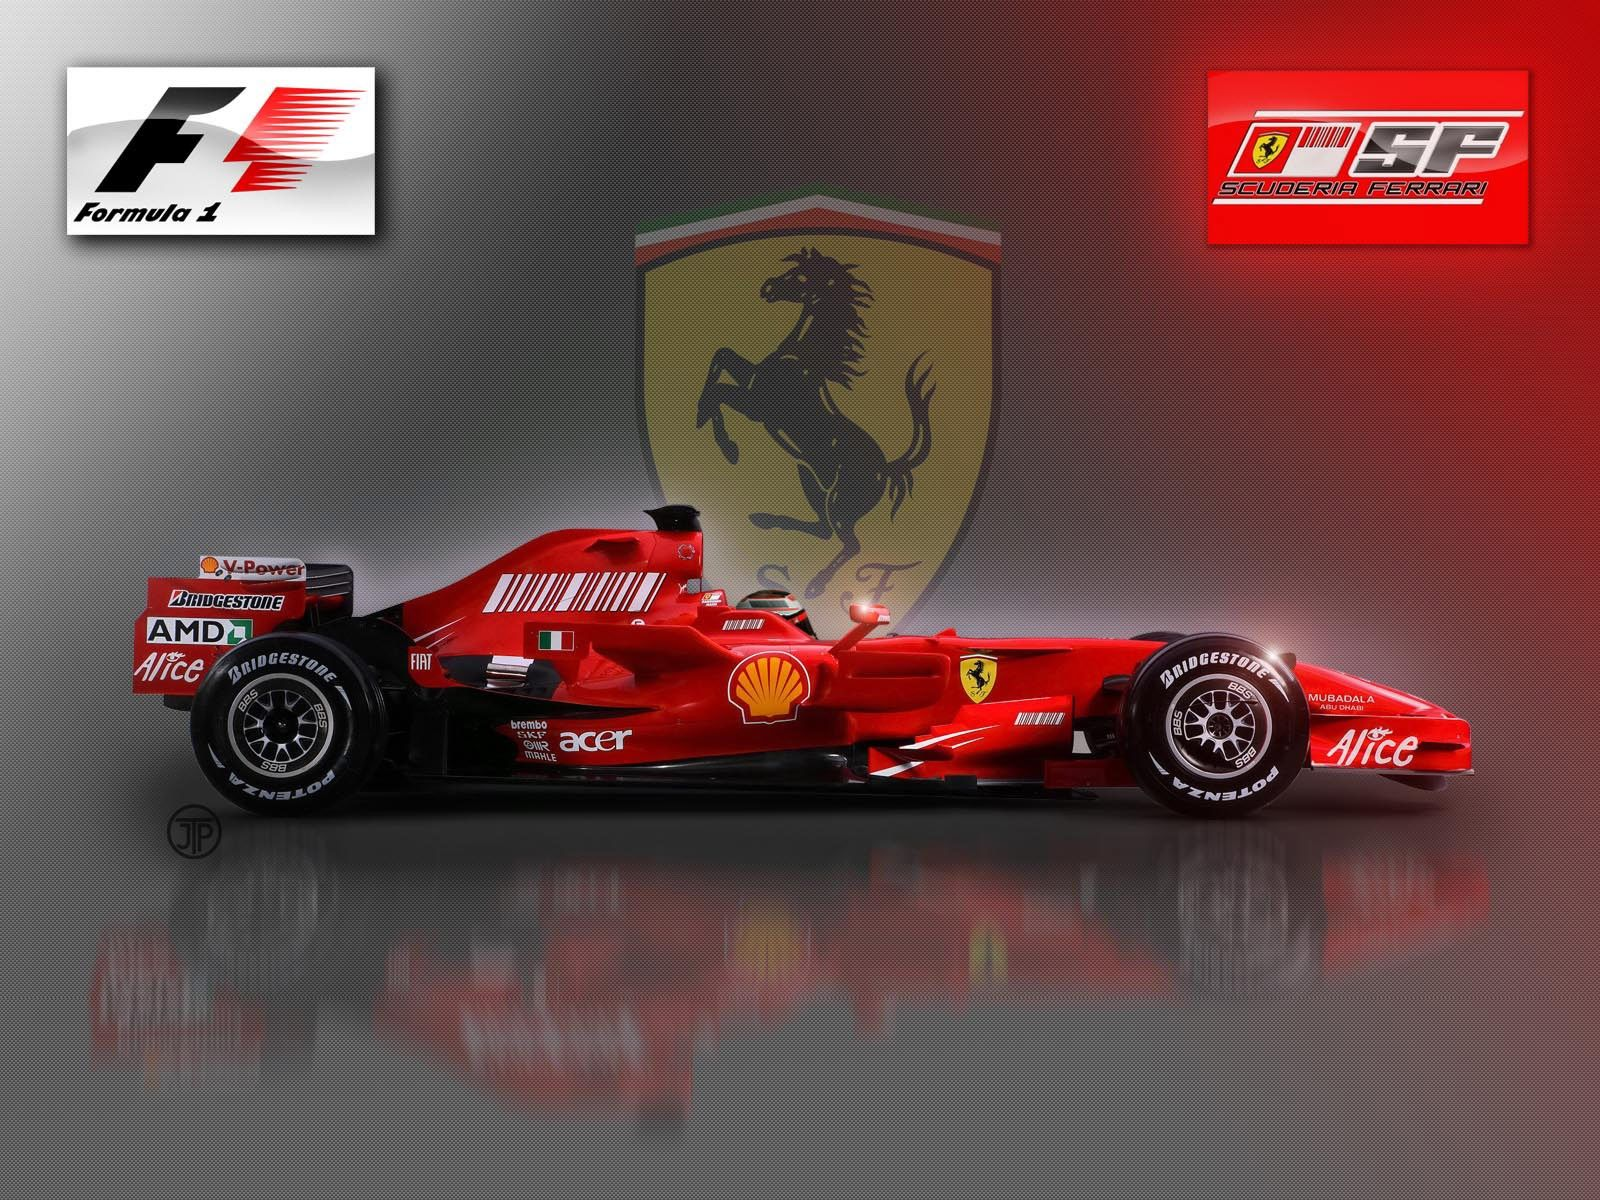 Ferrari F1 Wallpapers Top Free Ferrari F1 Backgrounds Wallpaperaccess